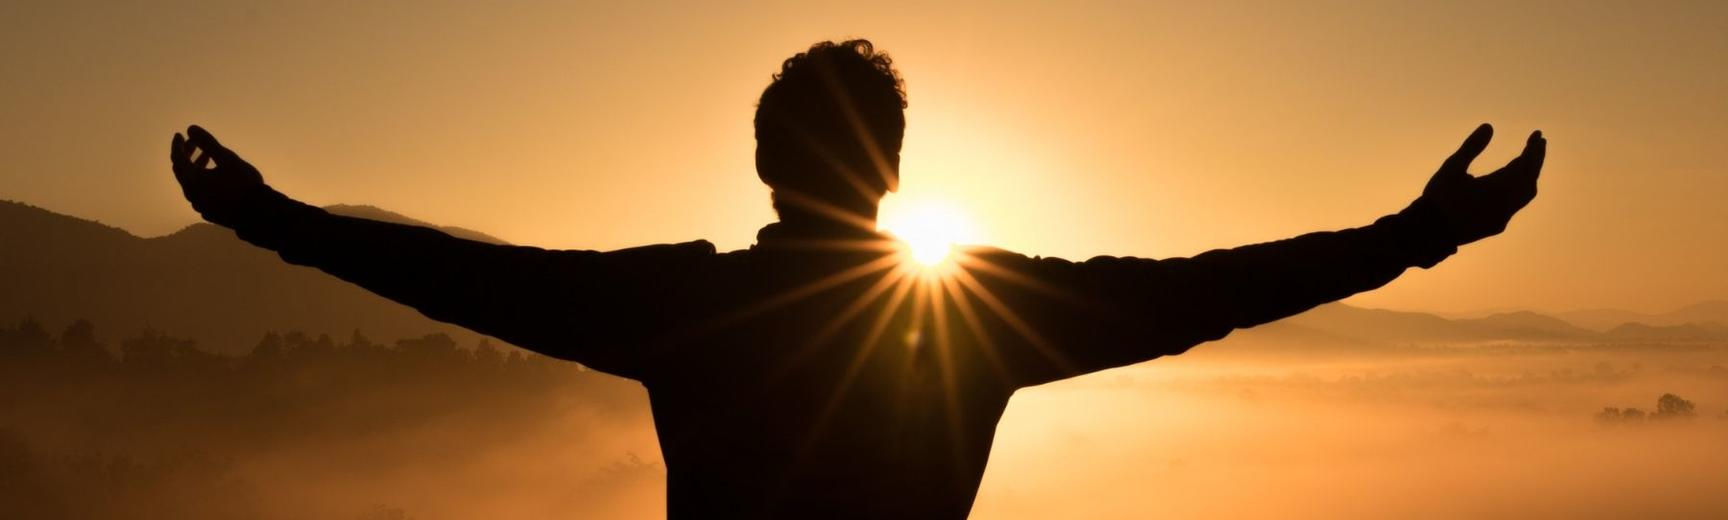 Person standing with their arms open in front of the sun